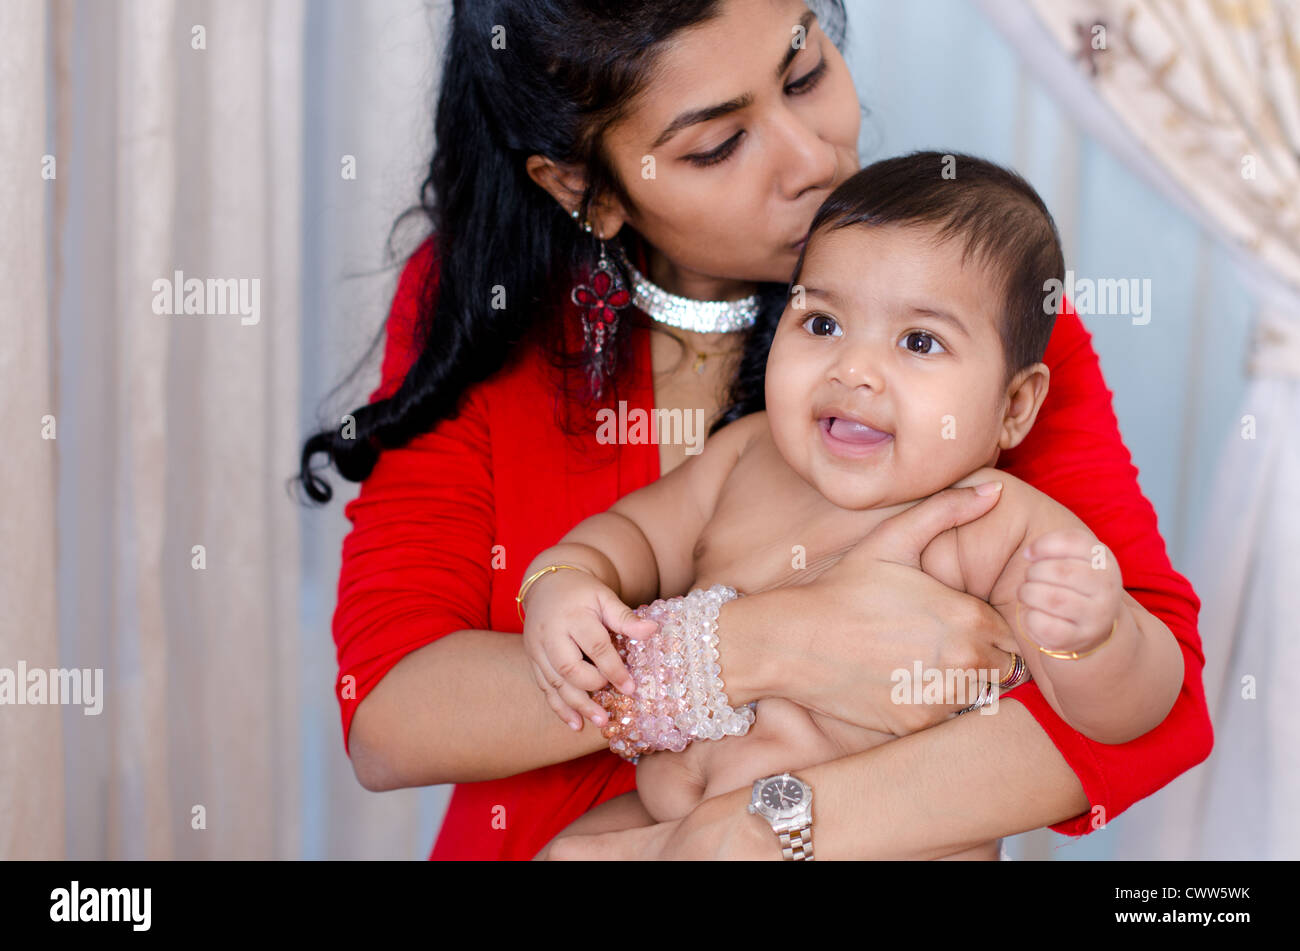 Indian mother kissing son bébé, piscine intérieure Photo Stock